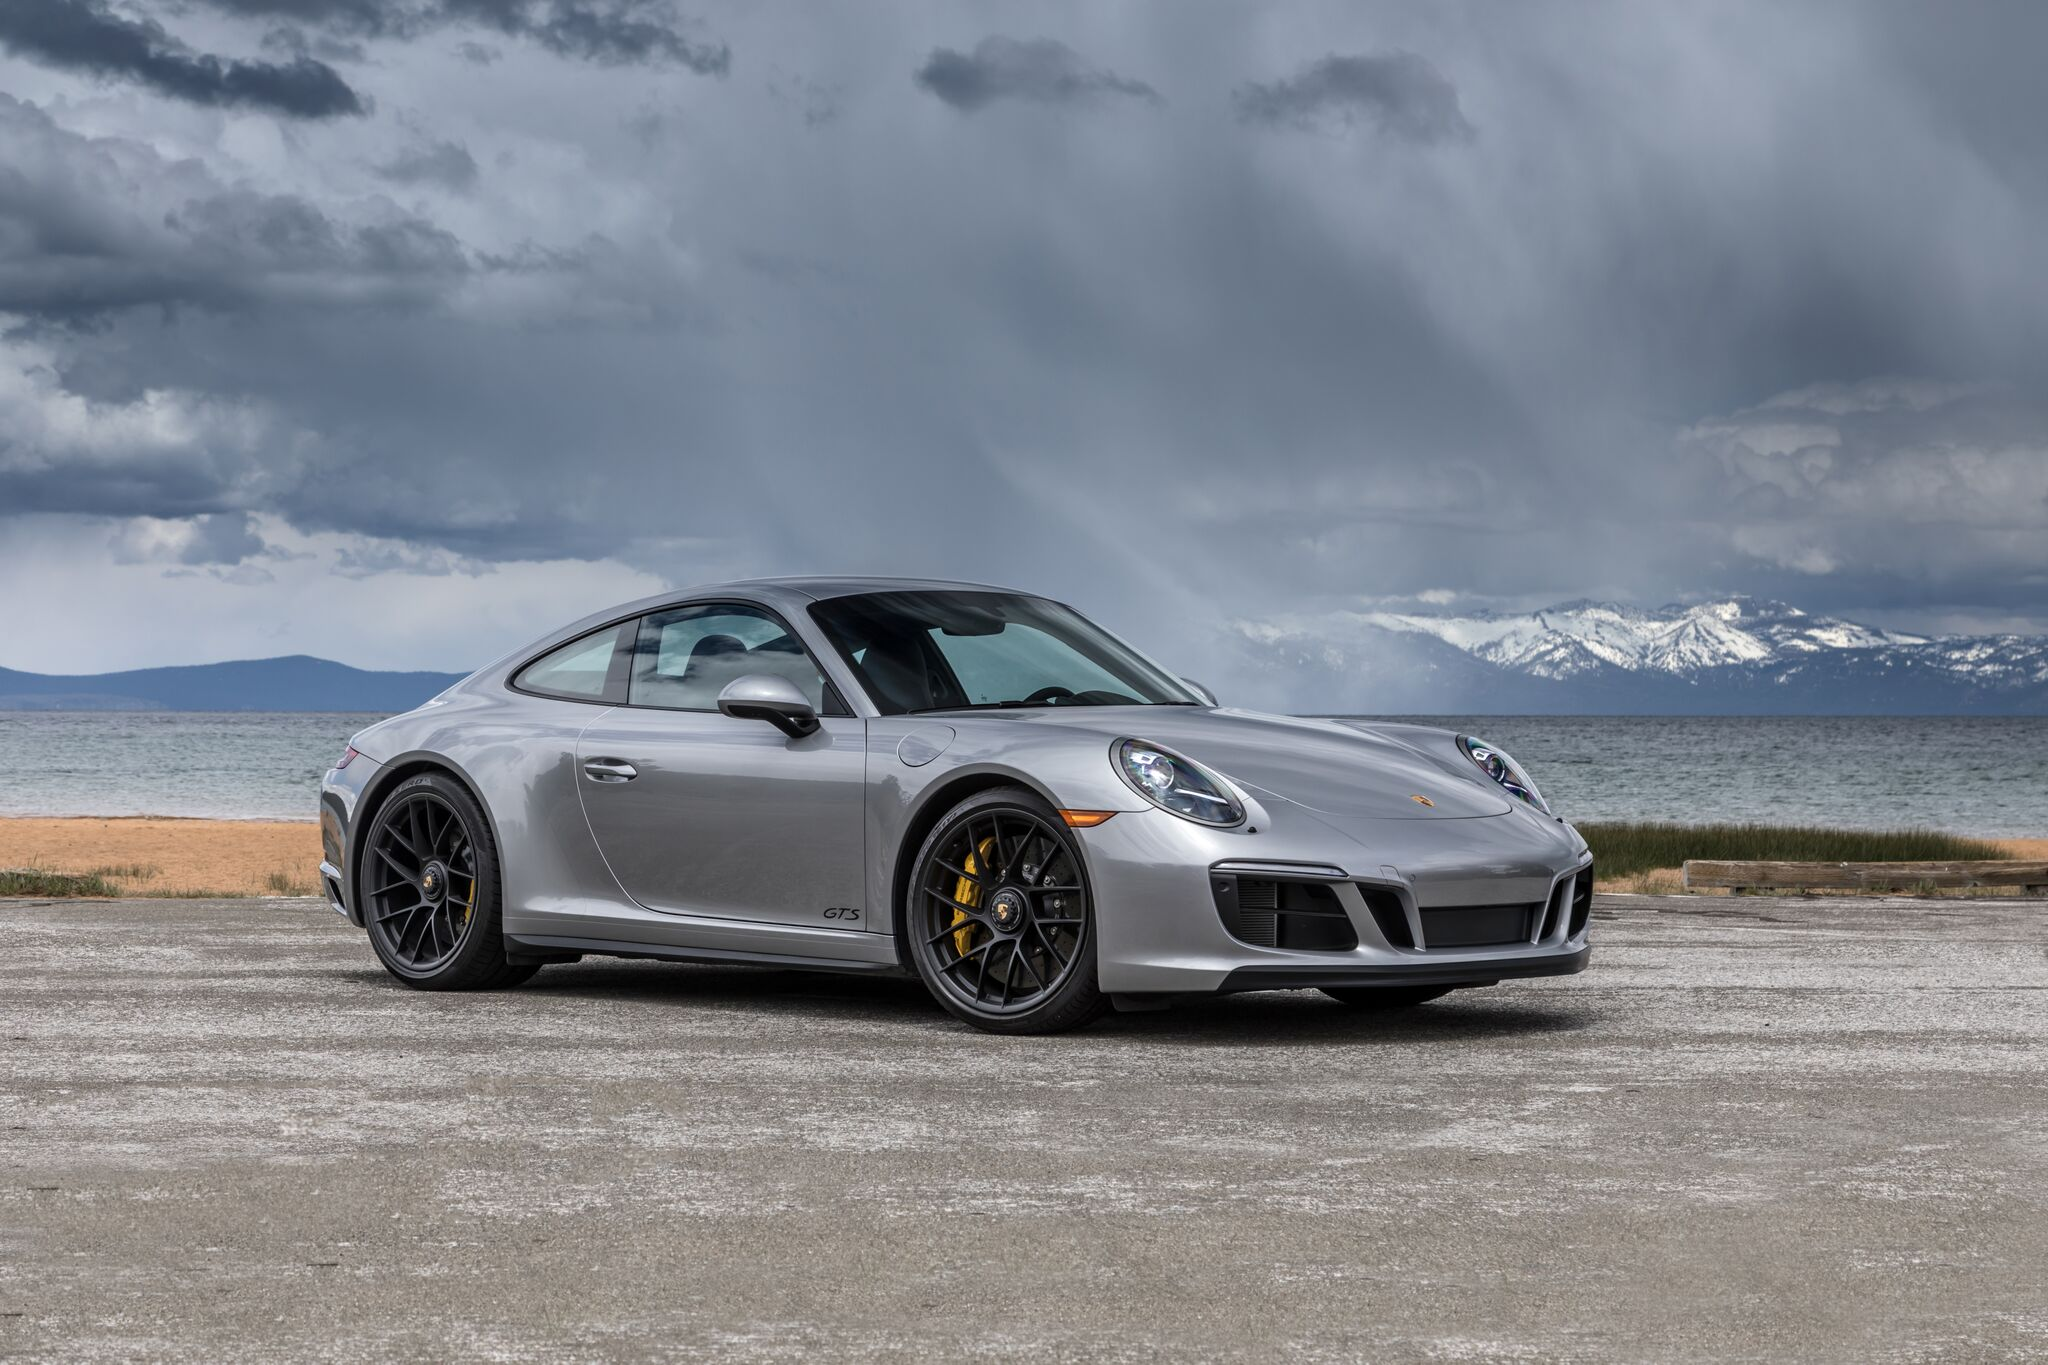 2018 porsche 911 carrera. beautiful 2018 thanks to newly designed larger twin turbos with 18 psi of boost the 30  liter flat six is up 450 horsepower and 405 lbft torque hit  on 2018 porsche 911 carrera s